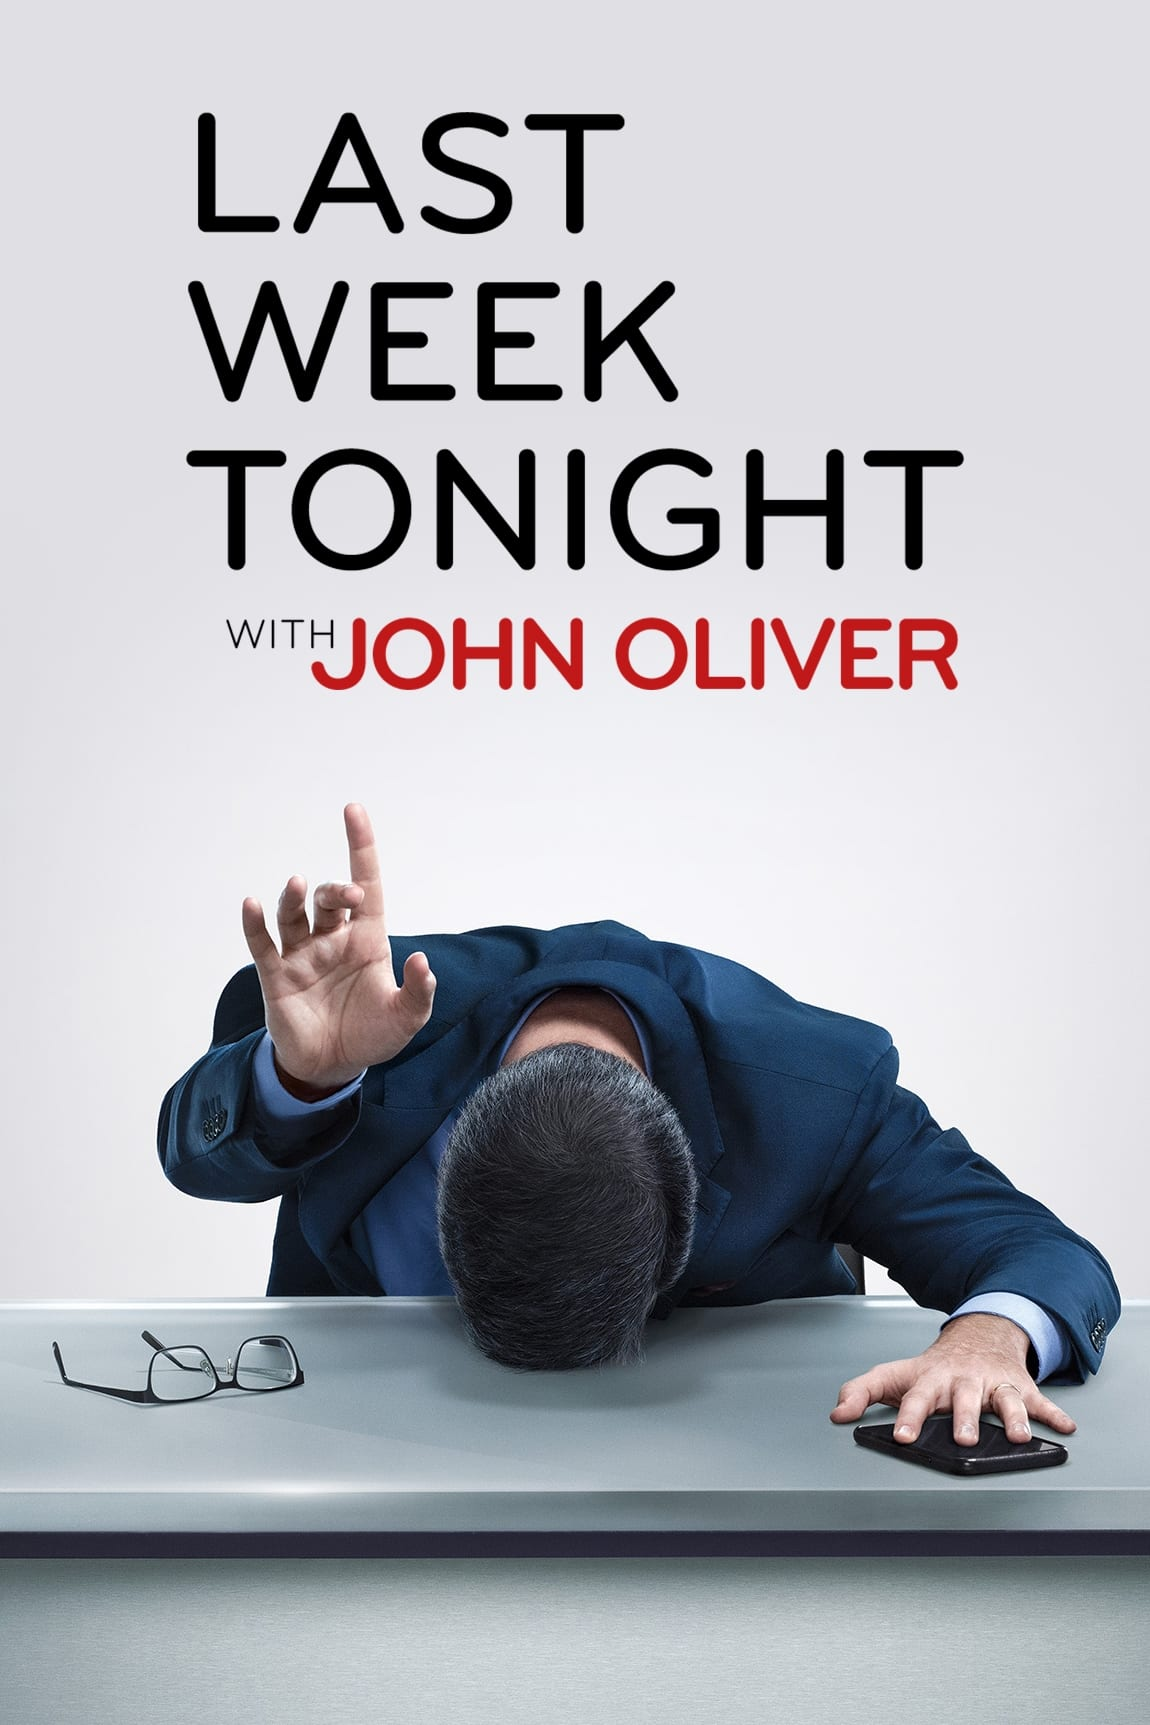 image for Last Week Tonight with John Oliver